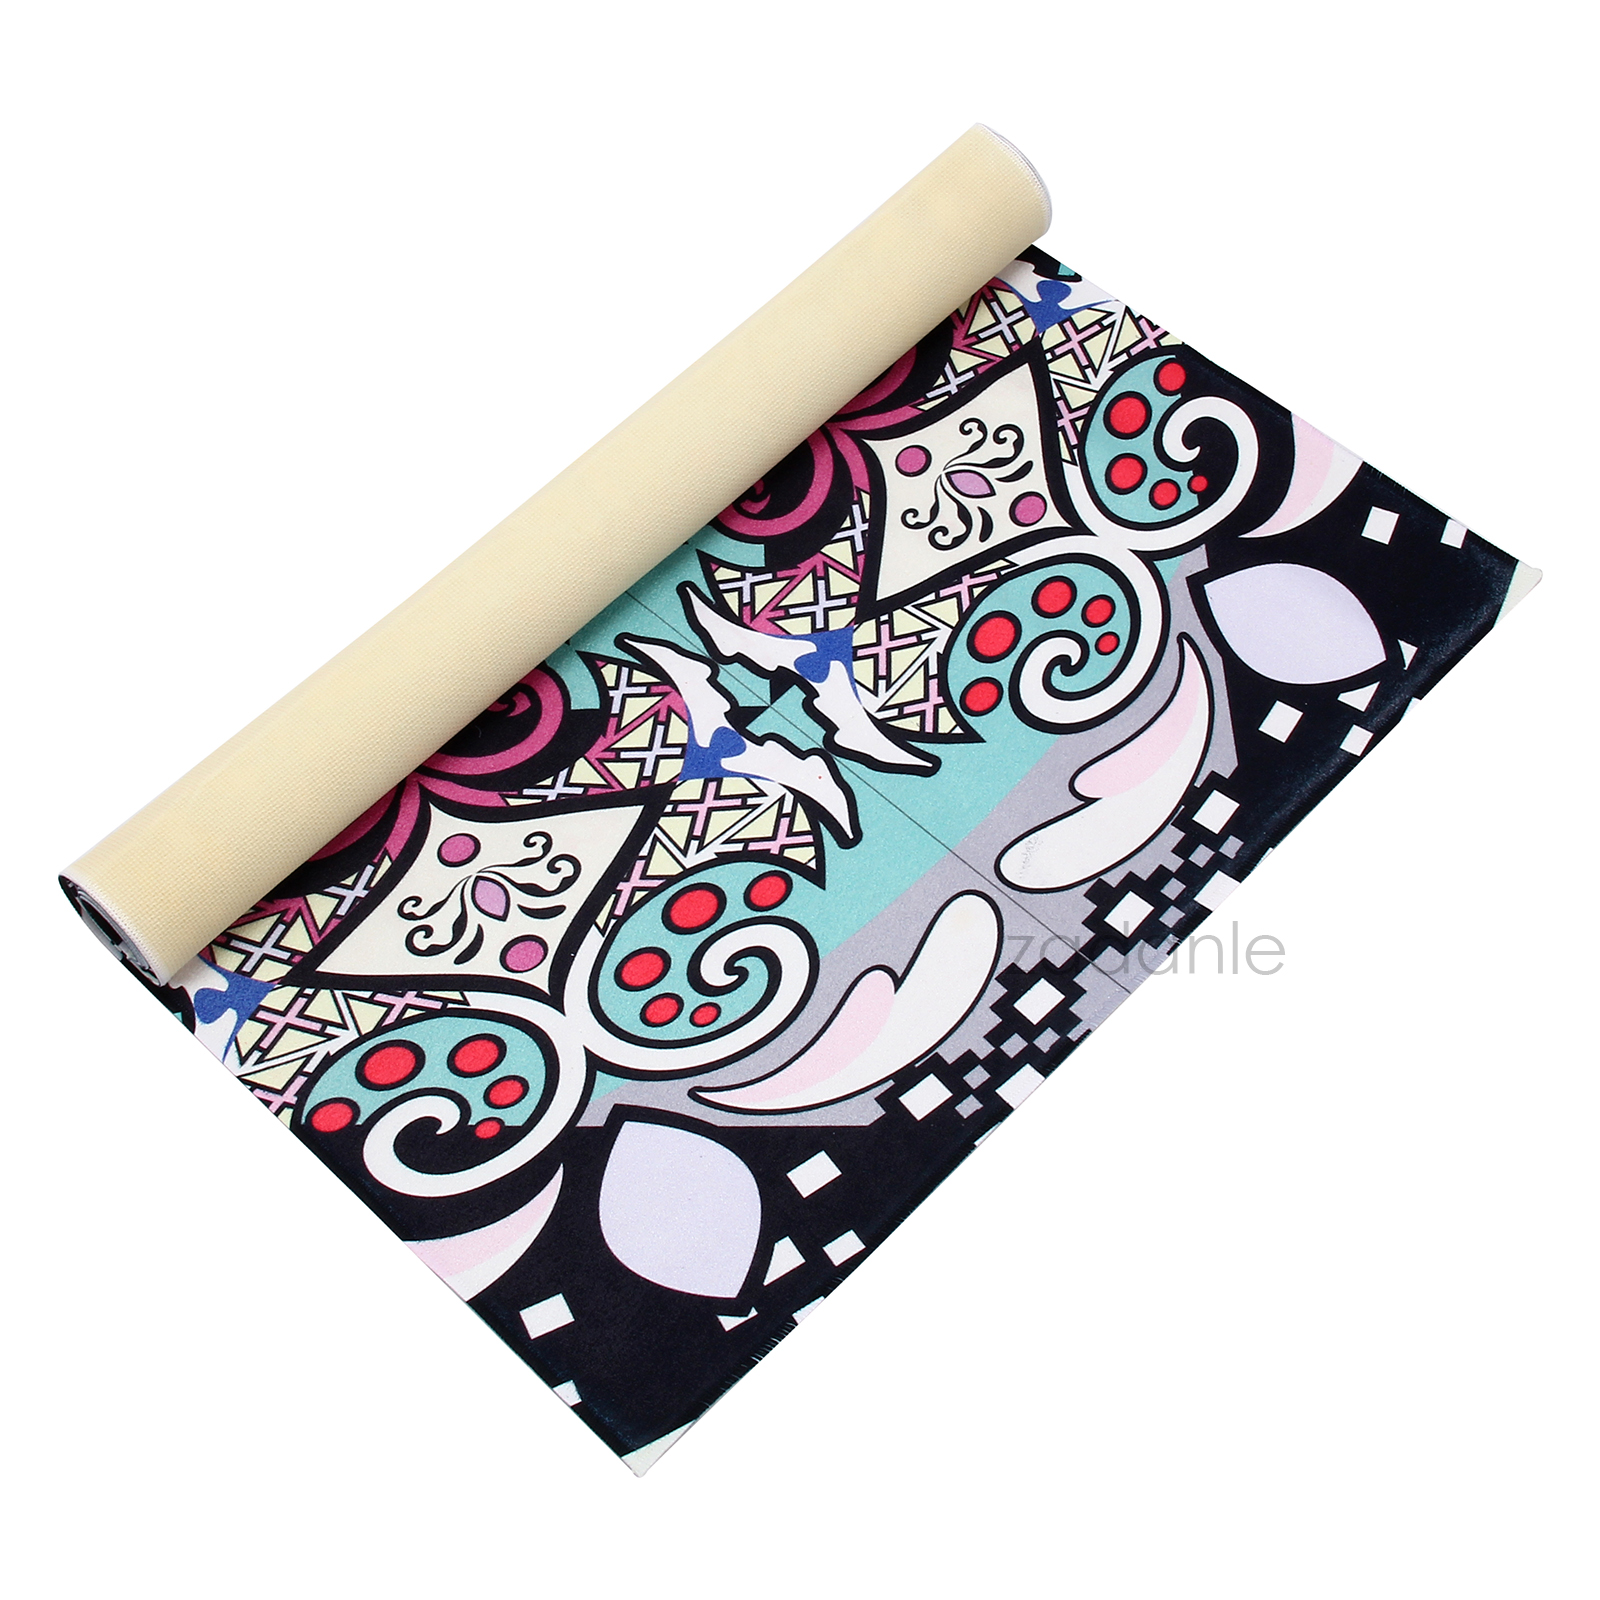 Hot Printed Colors Yoga Pilates Exercise Mat Eco